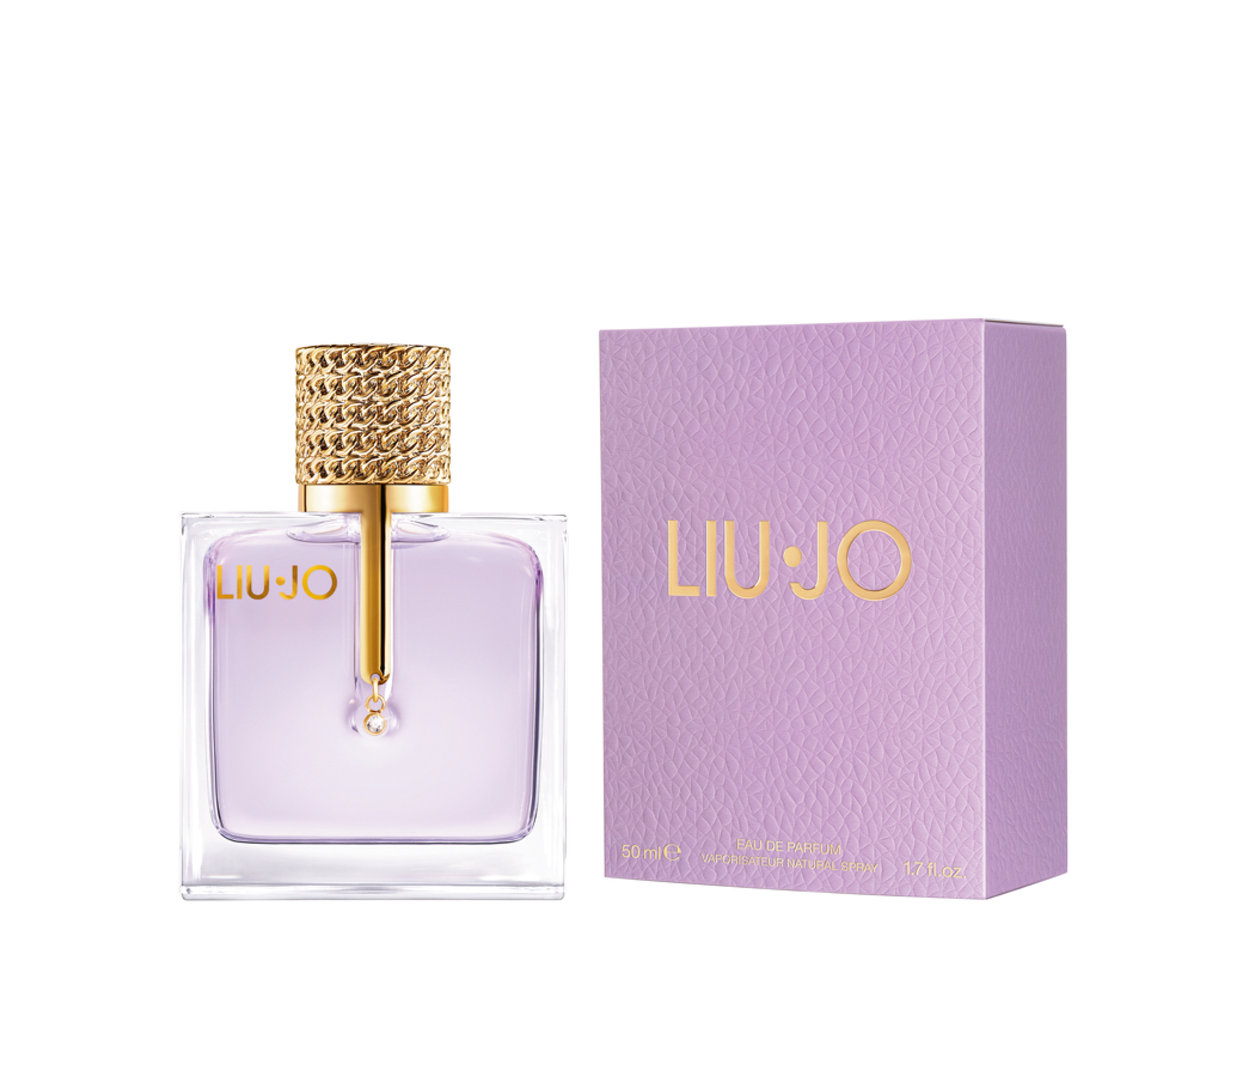 liu jo eau de parfum 50 ml. Black Bedroom Furniture Sets. Home Design Ideas